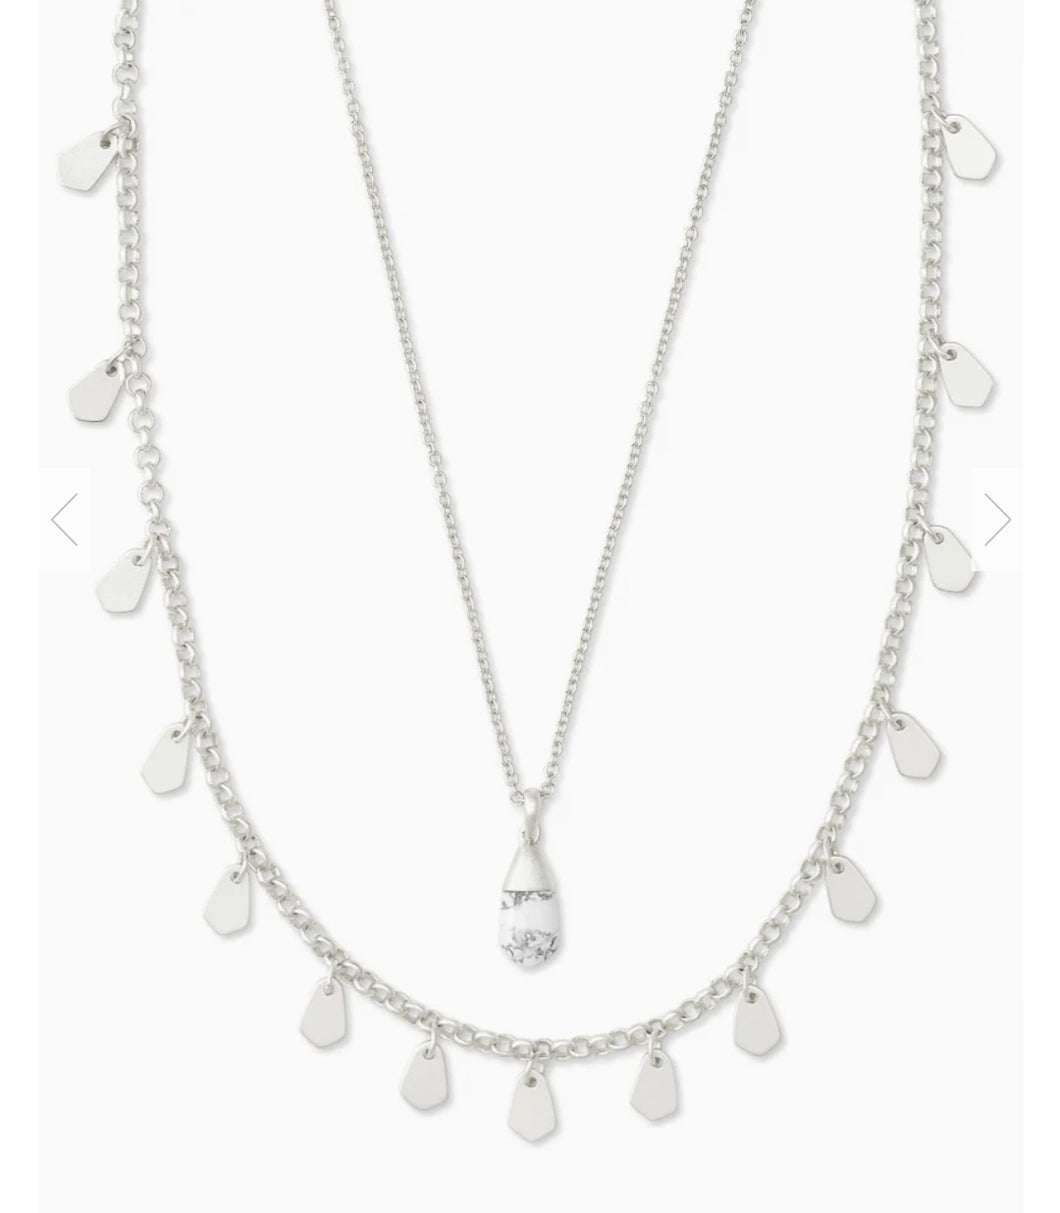 Kendra Scott Freida Silver Multi Strand Necklace in White Howlite